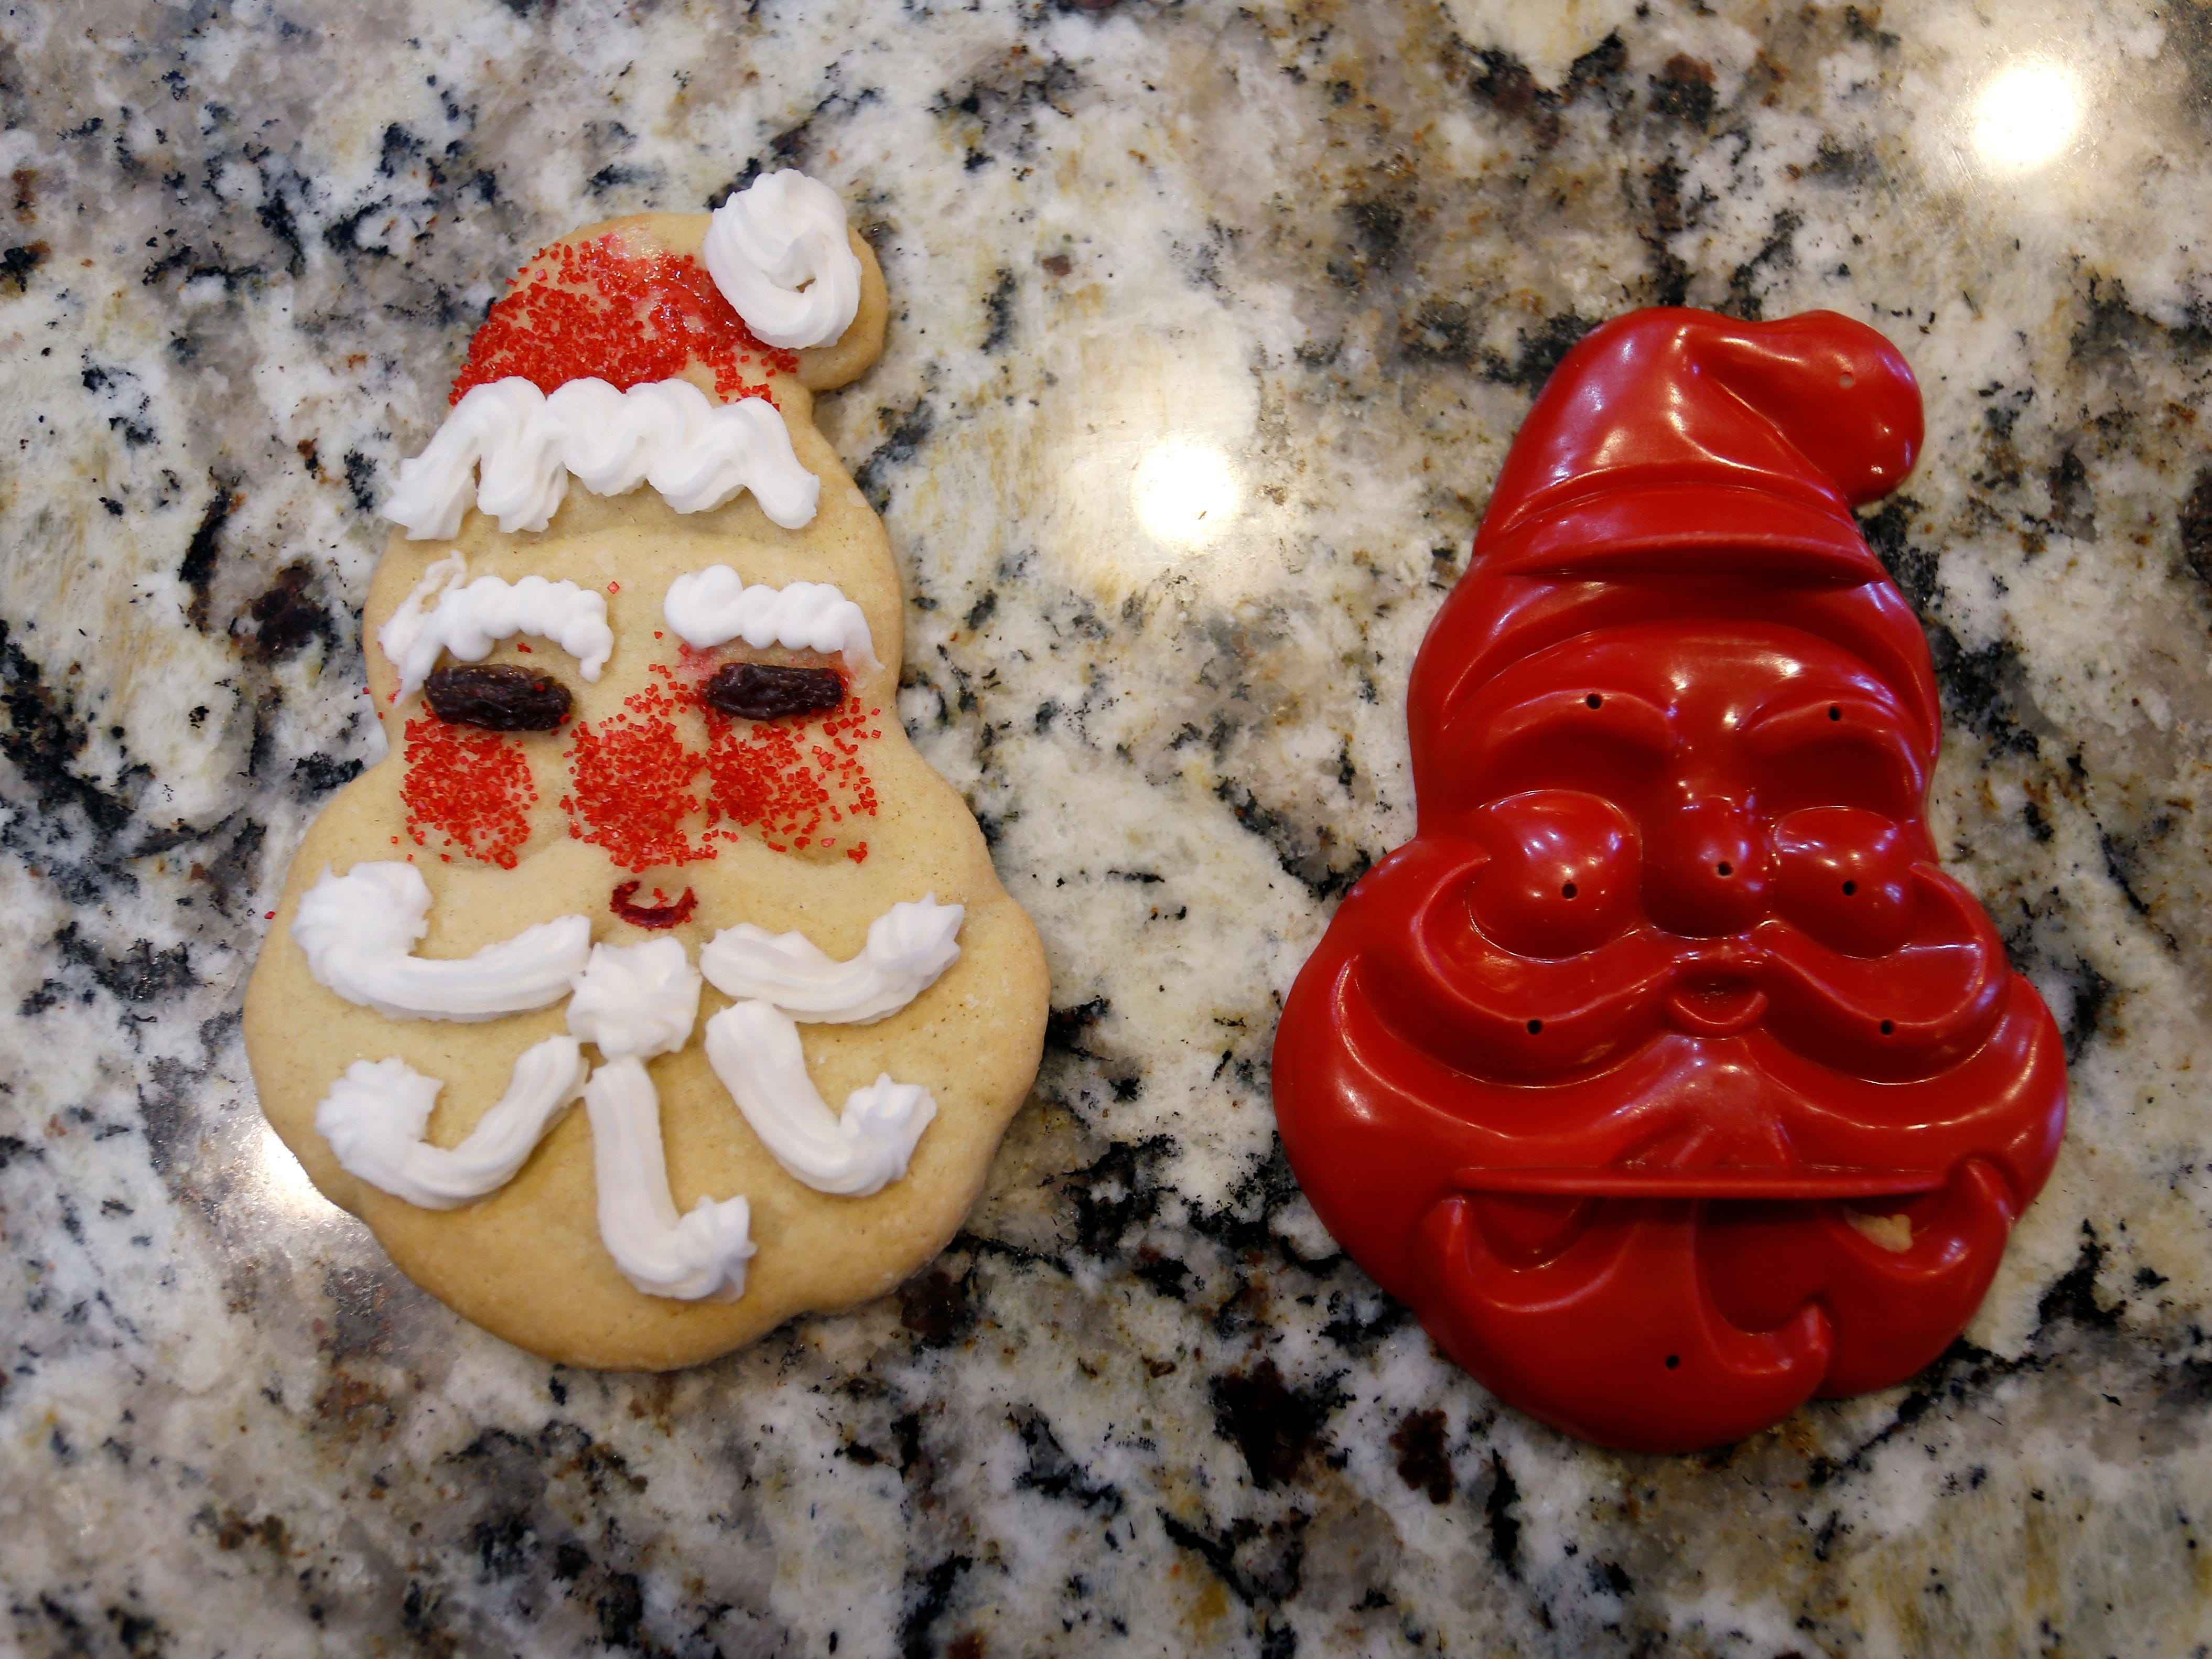 One of Jeanette Wotherspoon's oldest cookie cutters and the cookie it makes during the annual Wotherspoon Christmas cookie extravaganza.